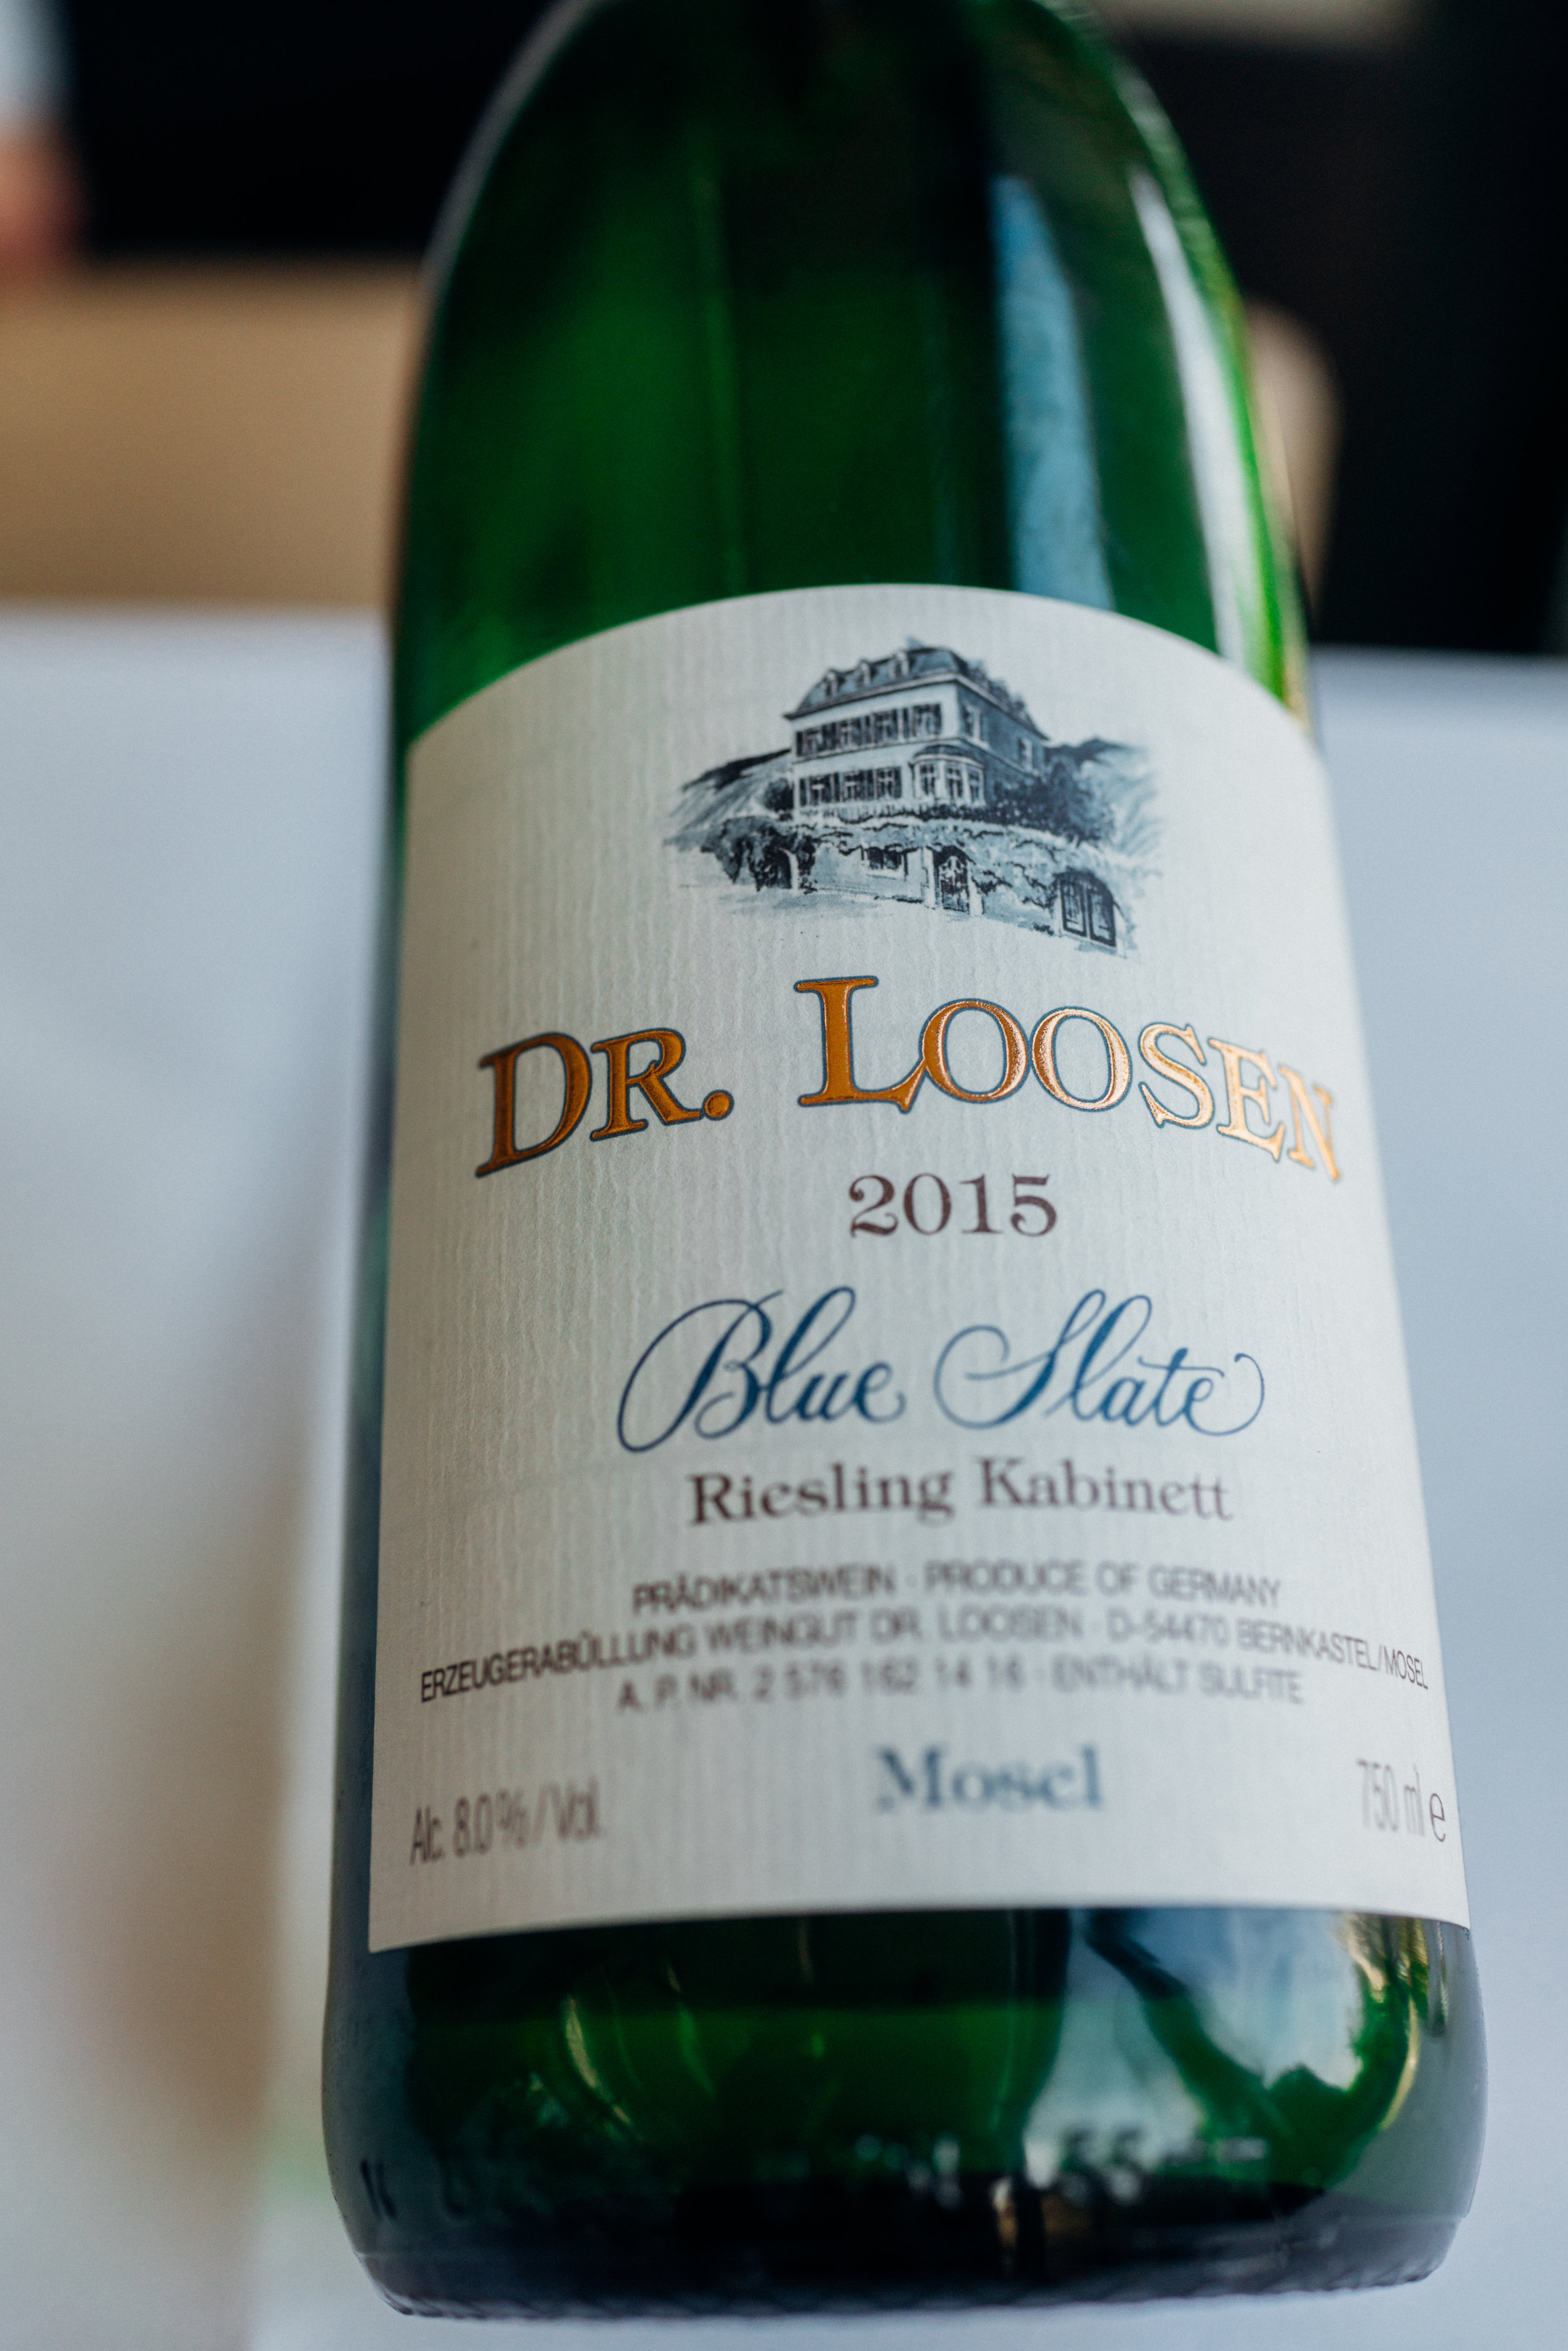 2015 Dr. Loosen Blue Slate Riesling, to pair with the foie gras